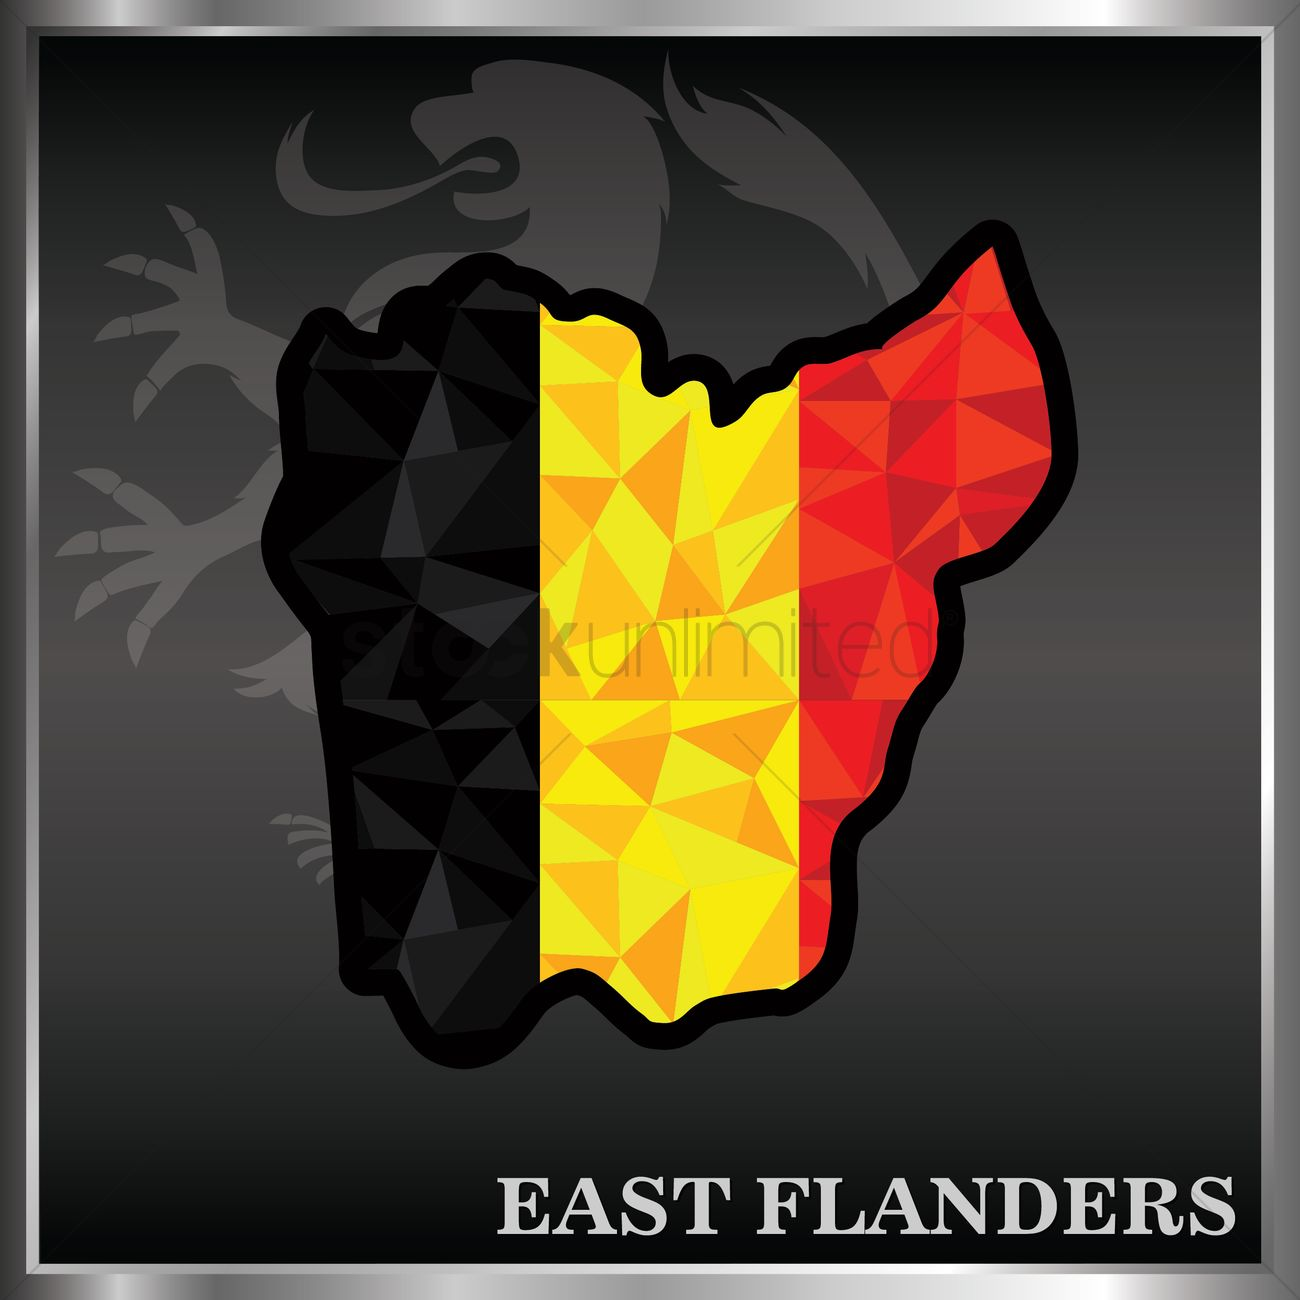 East flanders wallpaper Vector Image   1581334 StockUnlimited 1300x1300